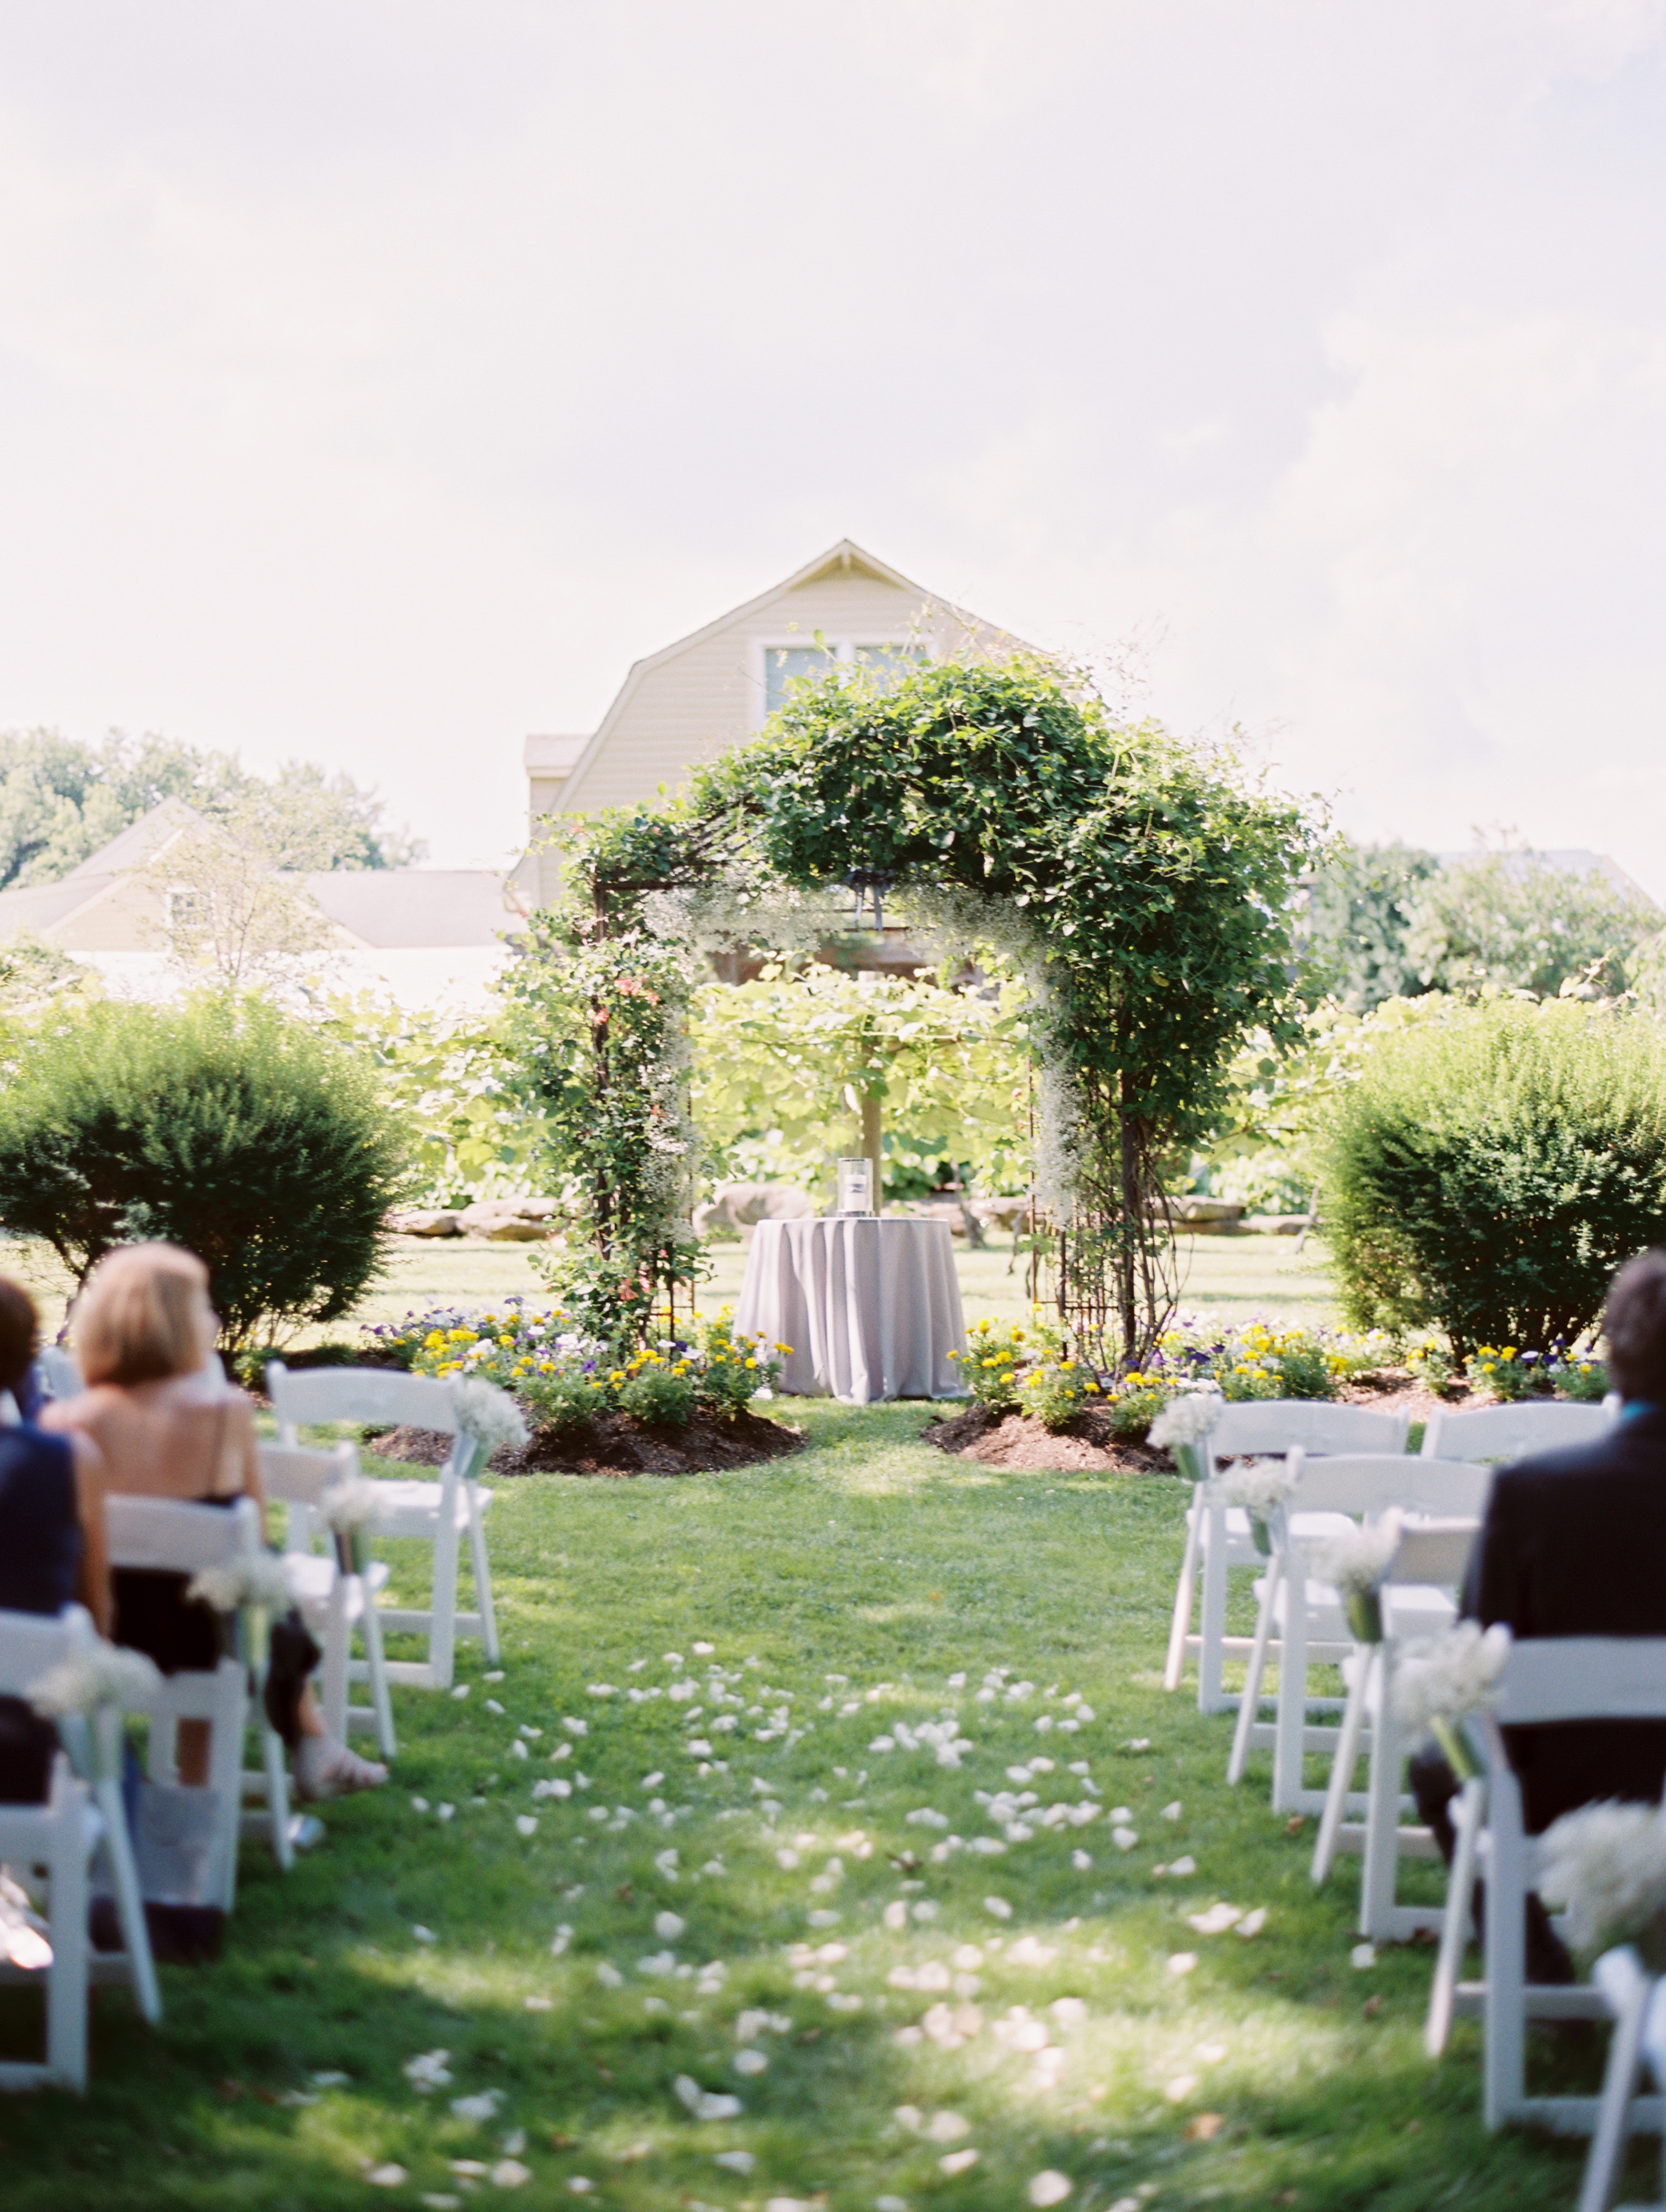 ceremony grounds with people